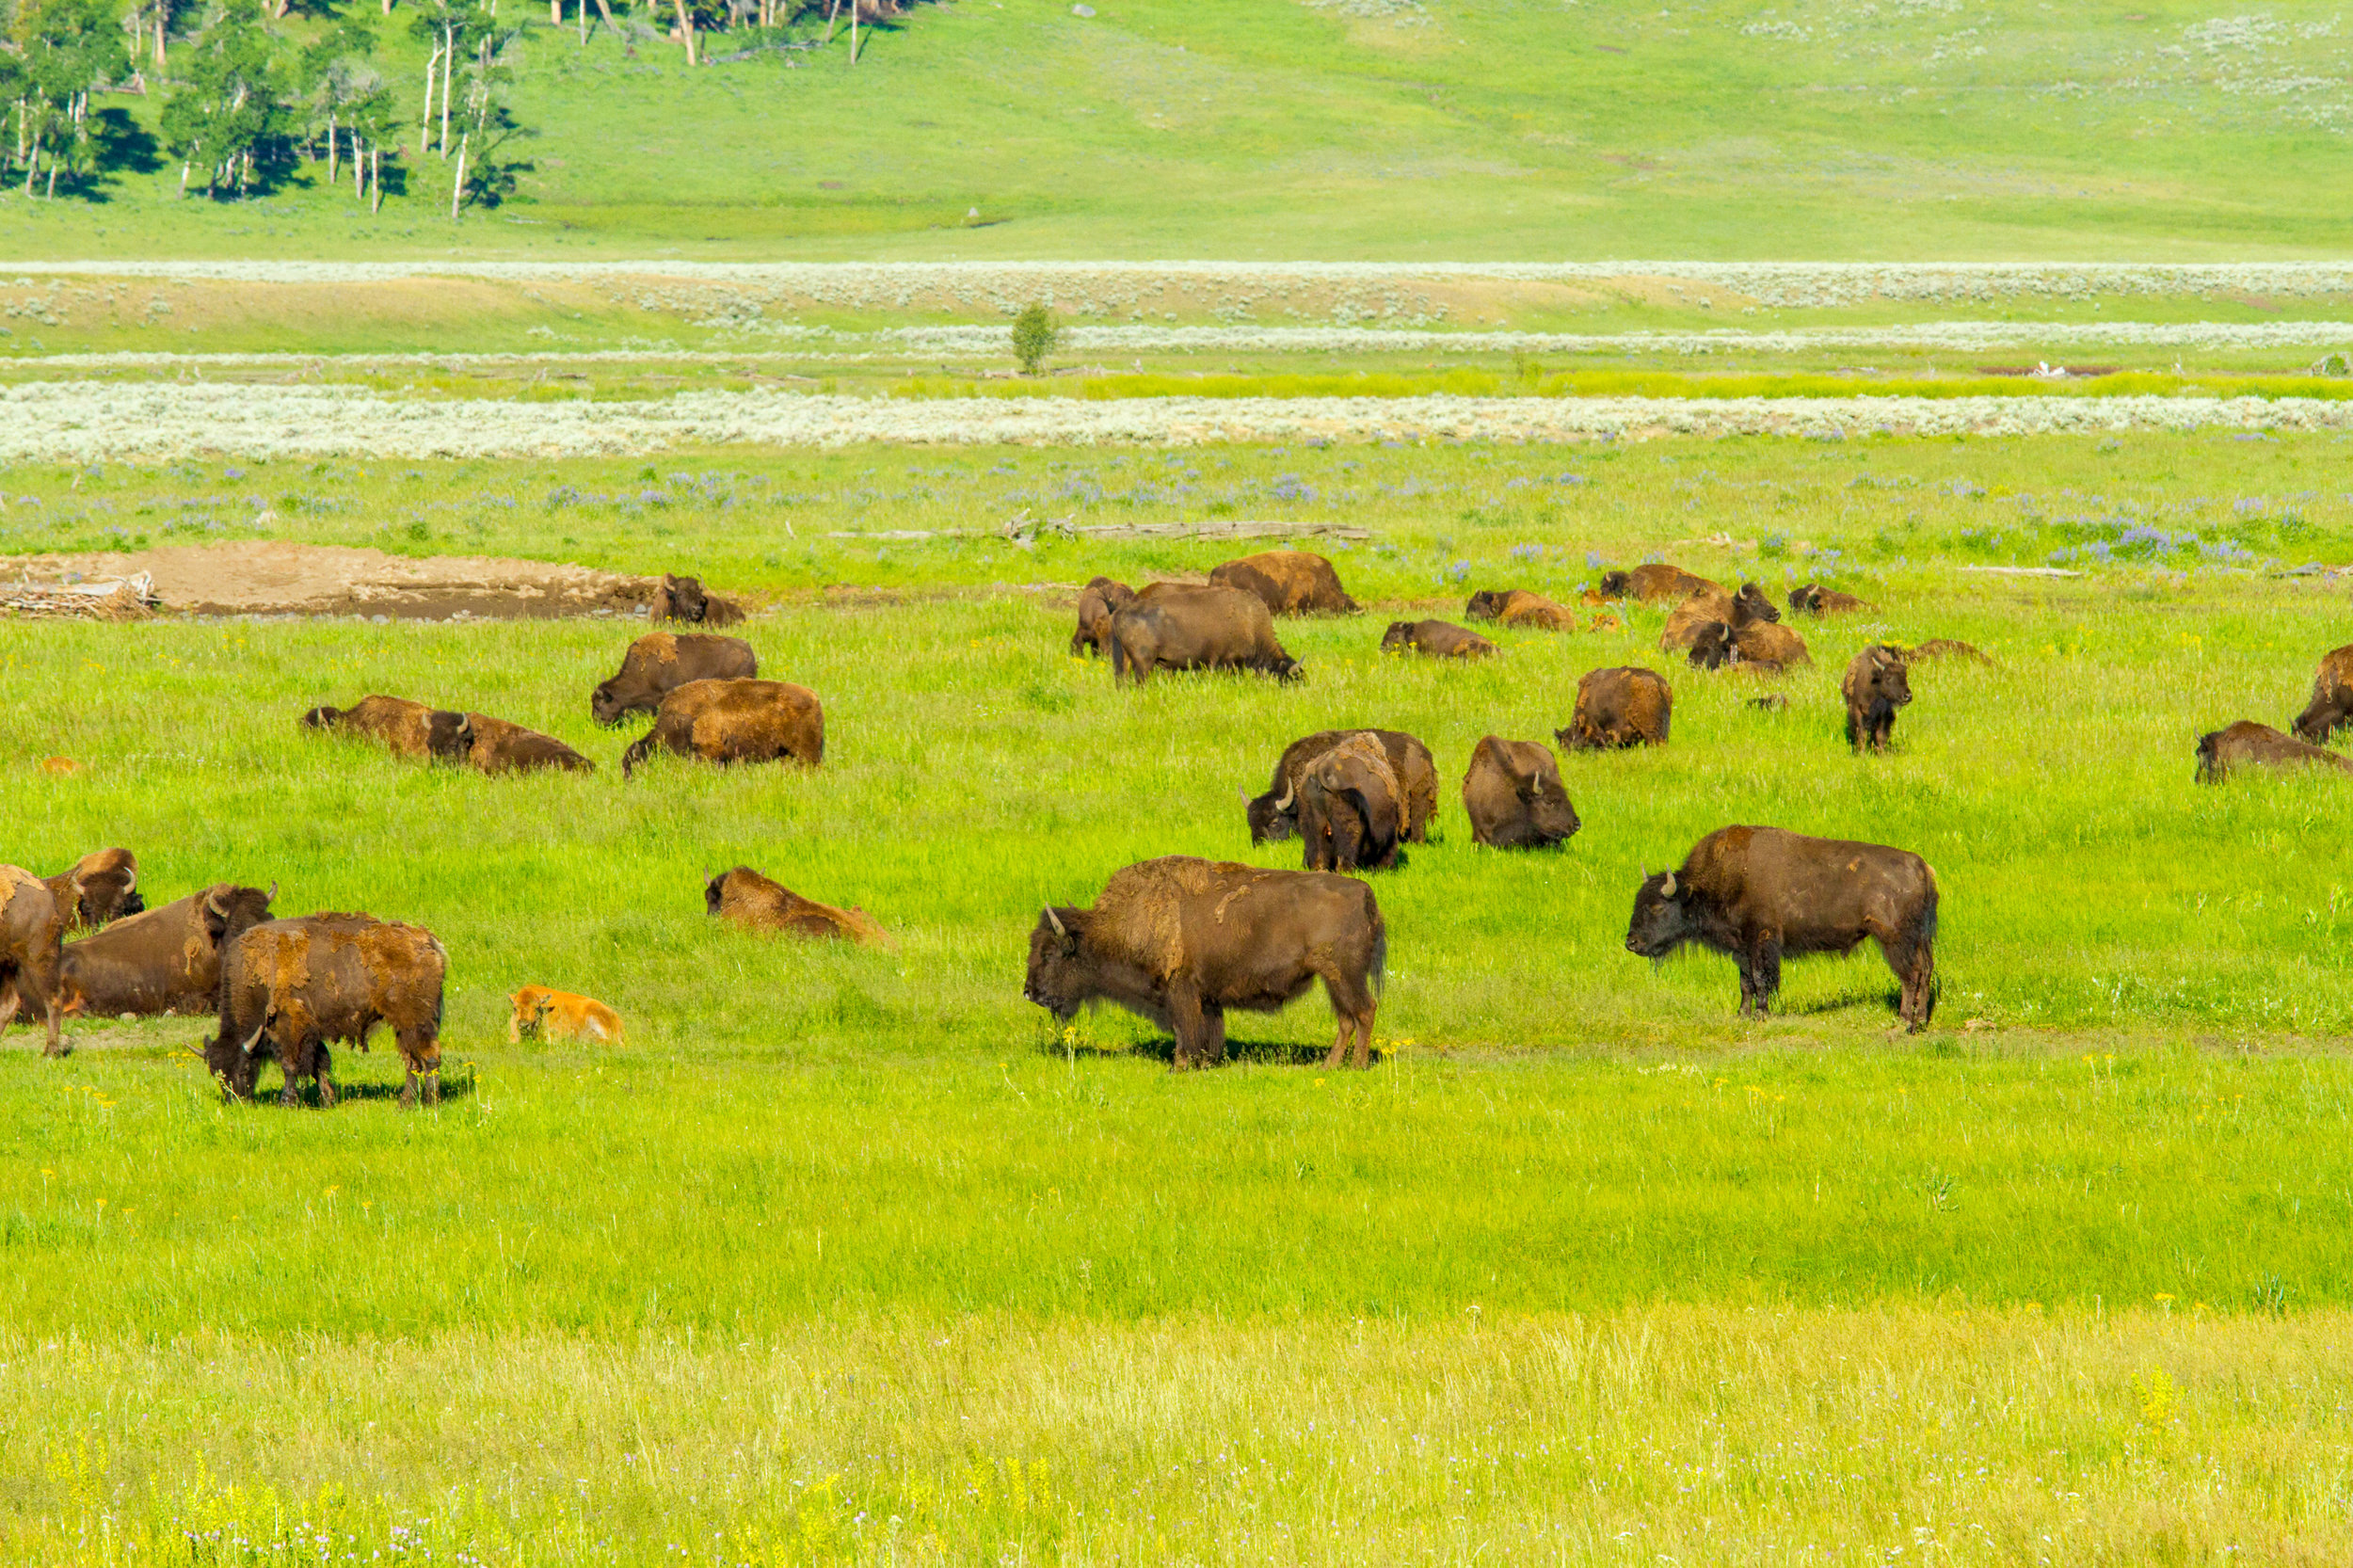 Lamar Valley, Yellowstone National Park, Image # 5117